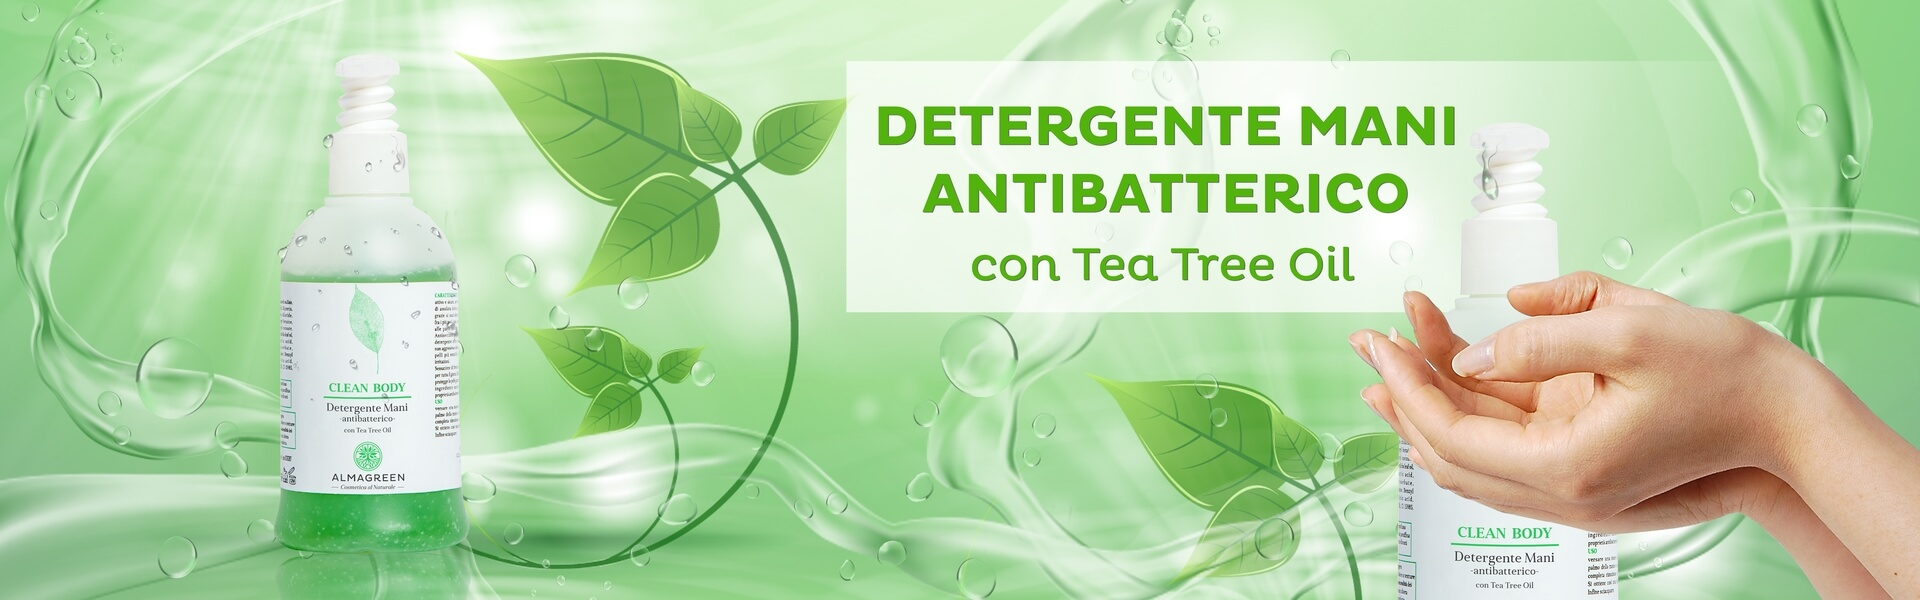 Detergente antibatterico naturale mani con Tea Tree Oil - Almagreen